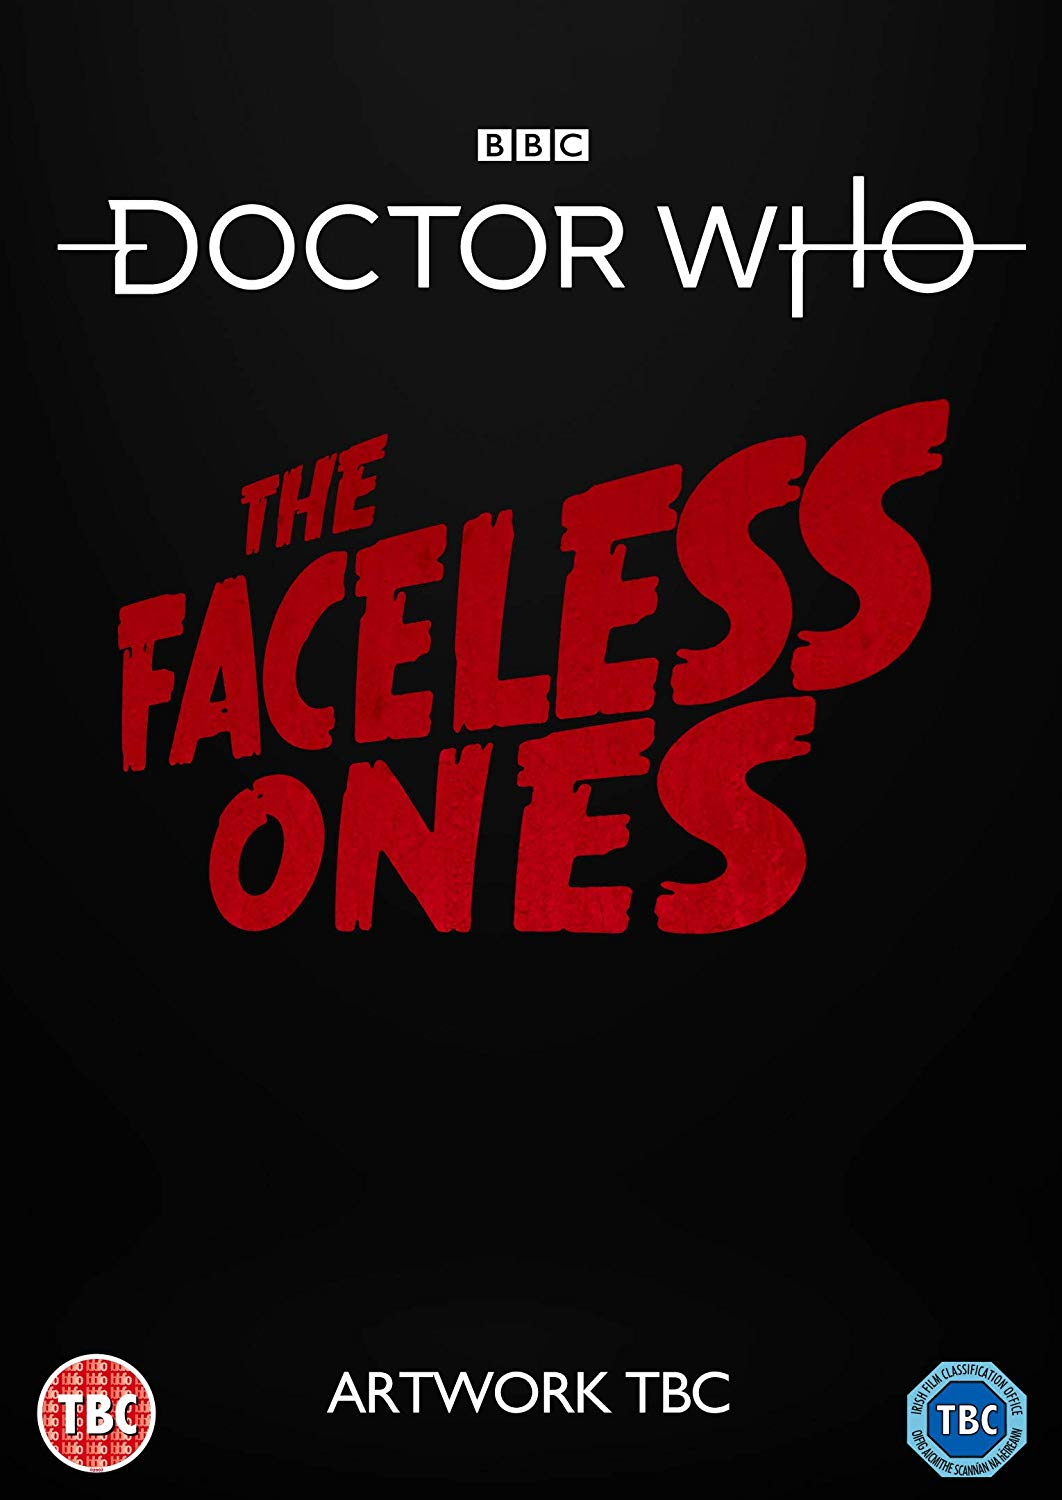 The placeholder cover to The Faceless Ones DVD (c) BBC Studios